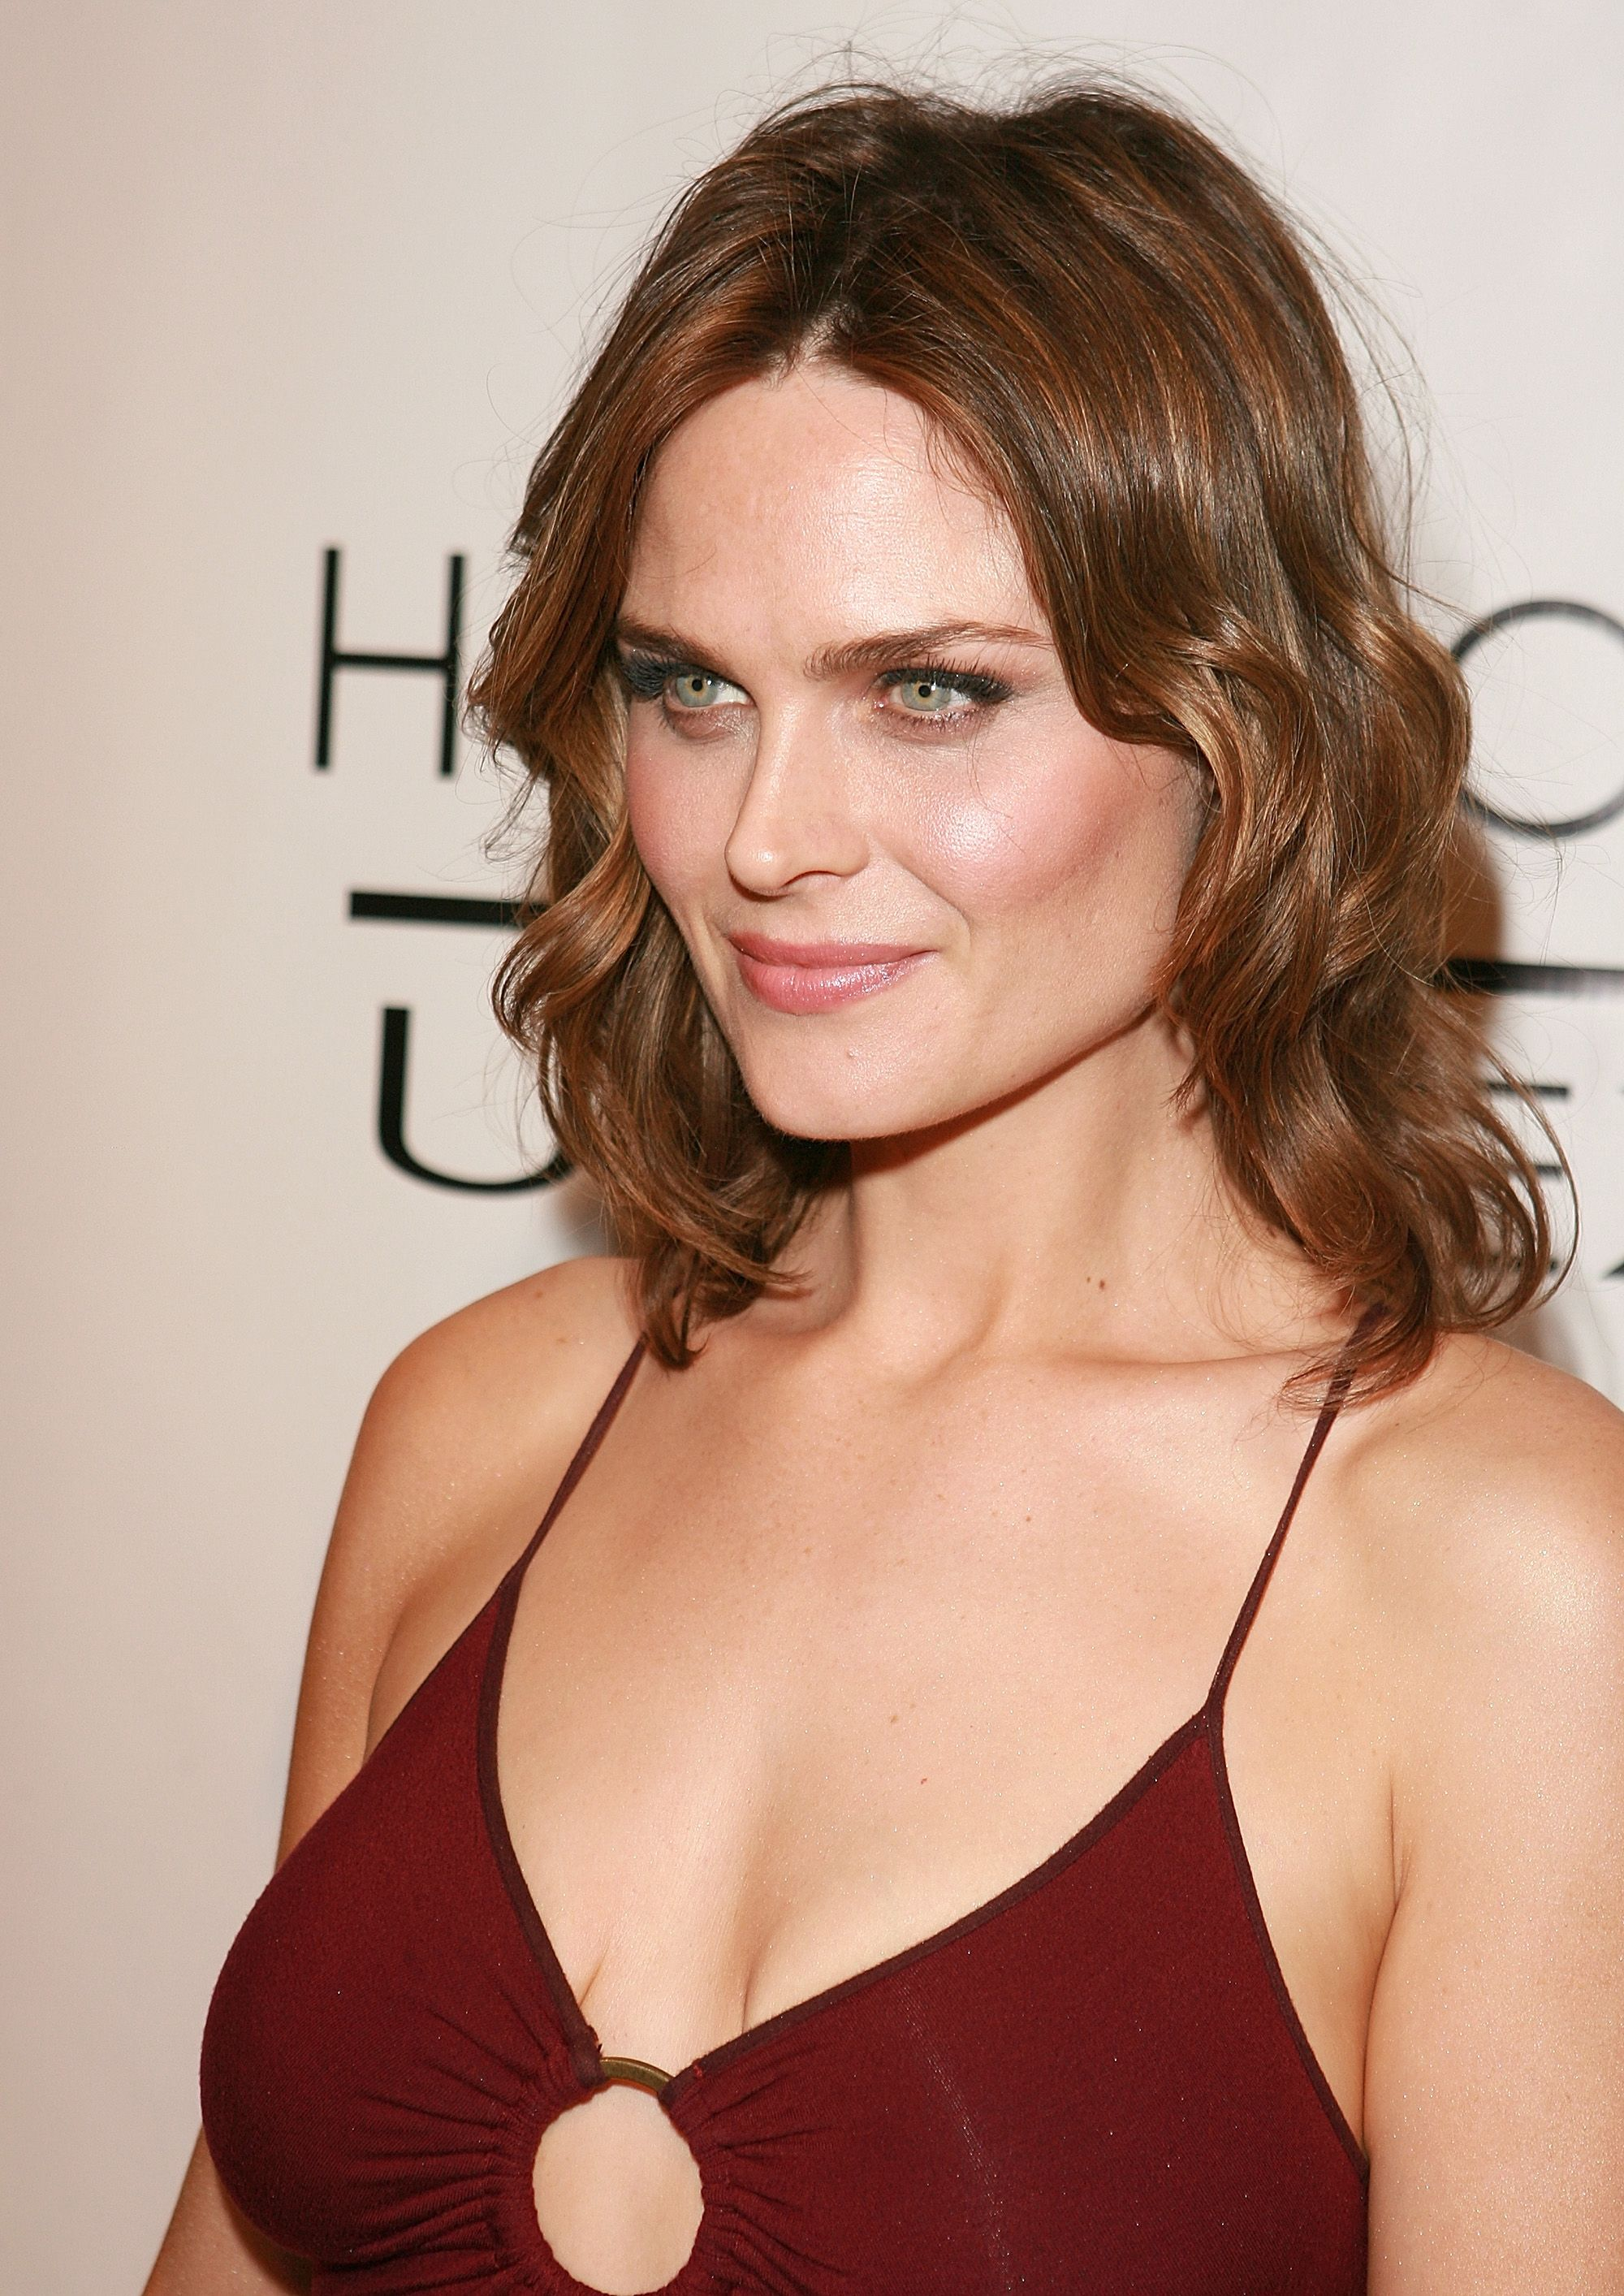 Pin by Caitlin Taylor on Celebrities (American) | Emily deschanel, Girl celebrities, Hollywood event